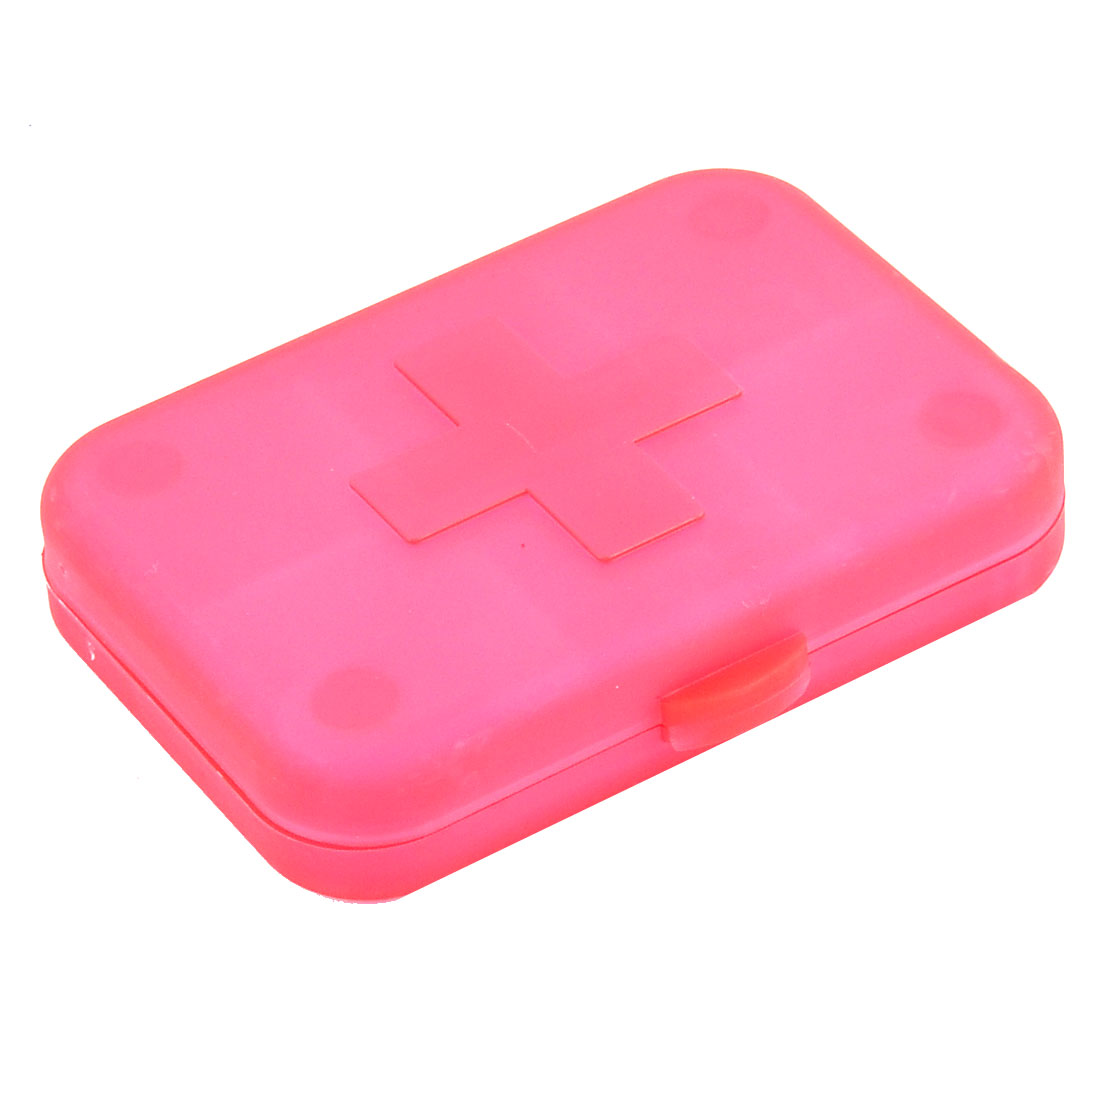 Plastic Rectangle Shape Cross Mark Medicine Pill Container Box Case Clear Red